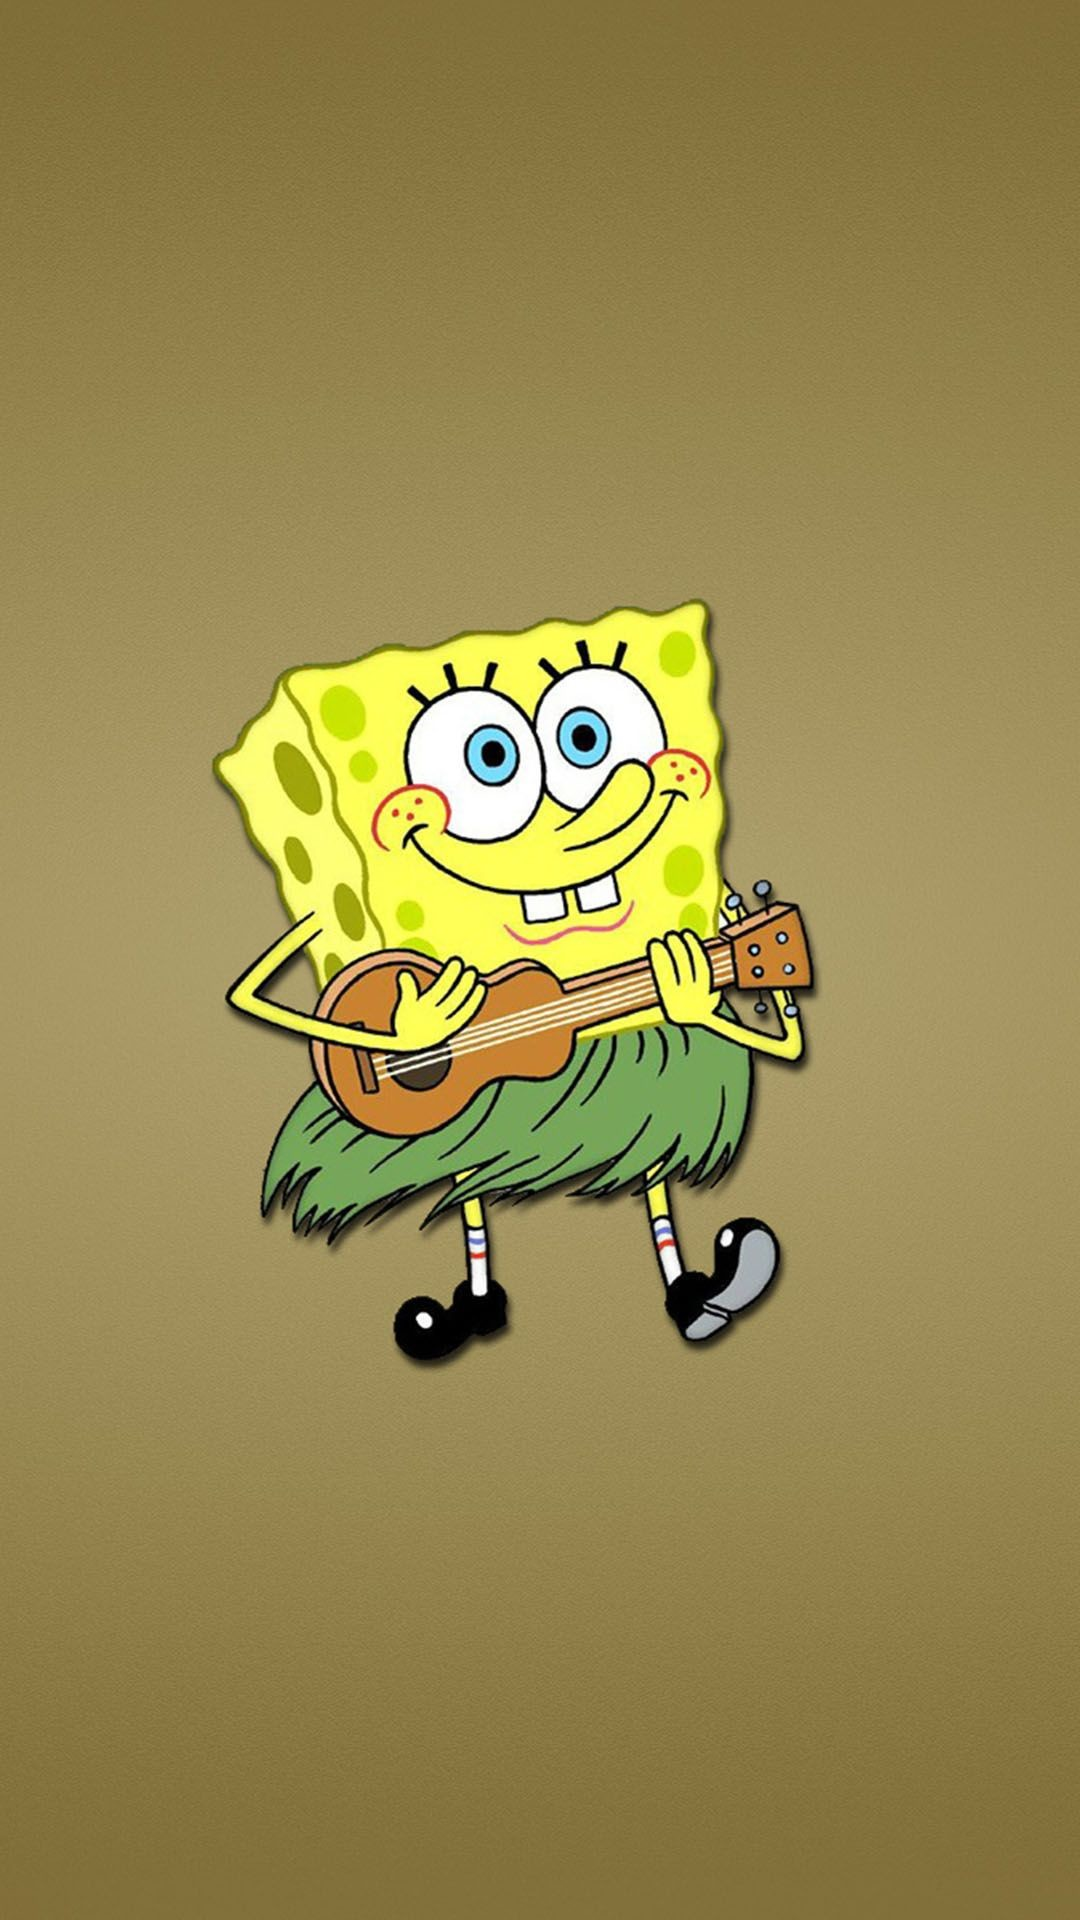 Funny Spongebob Wallpapers Posted By John Sellers